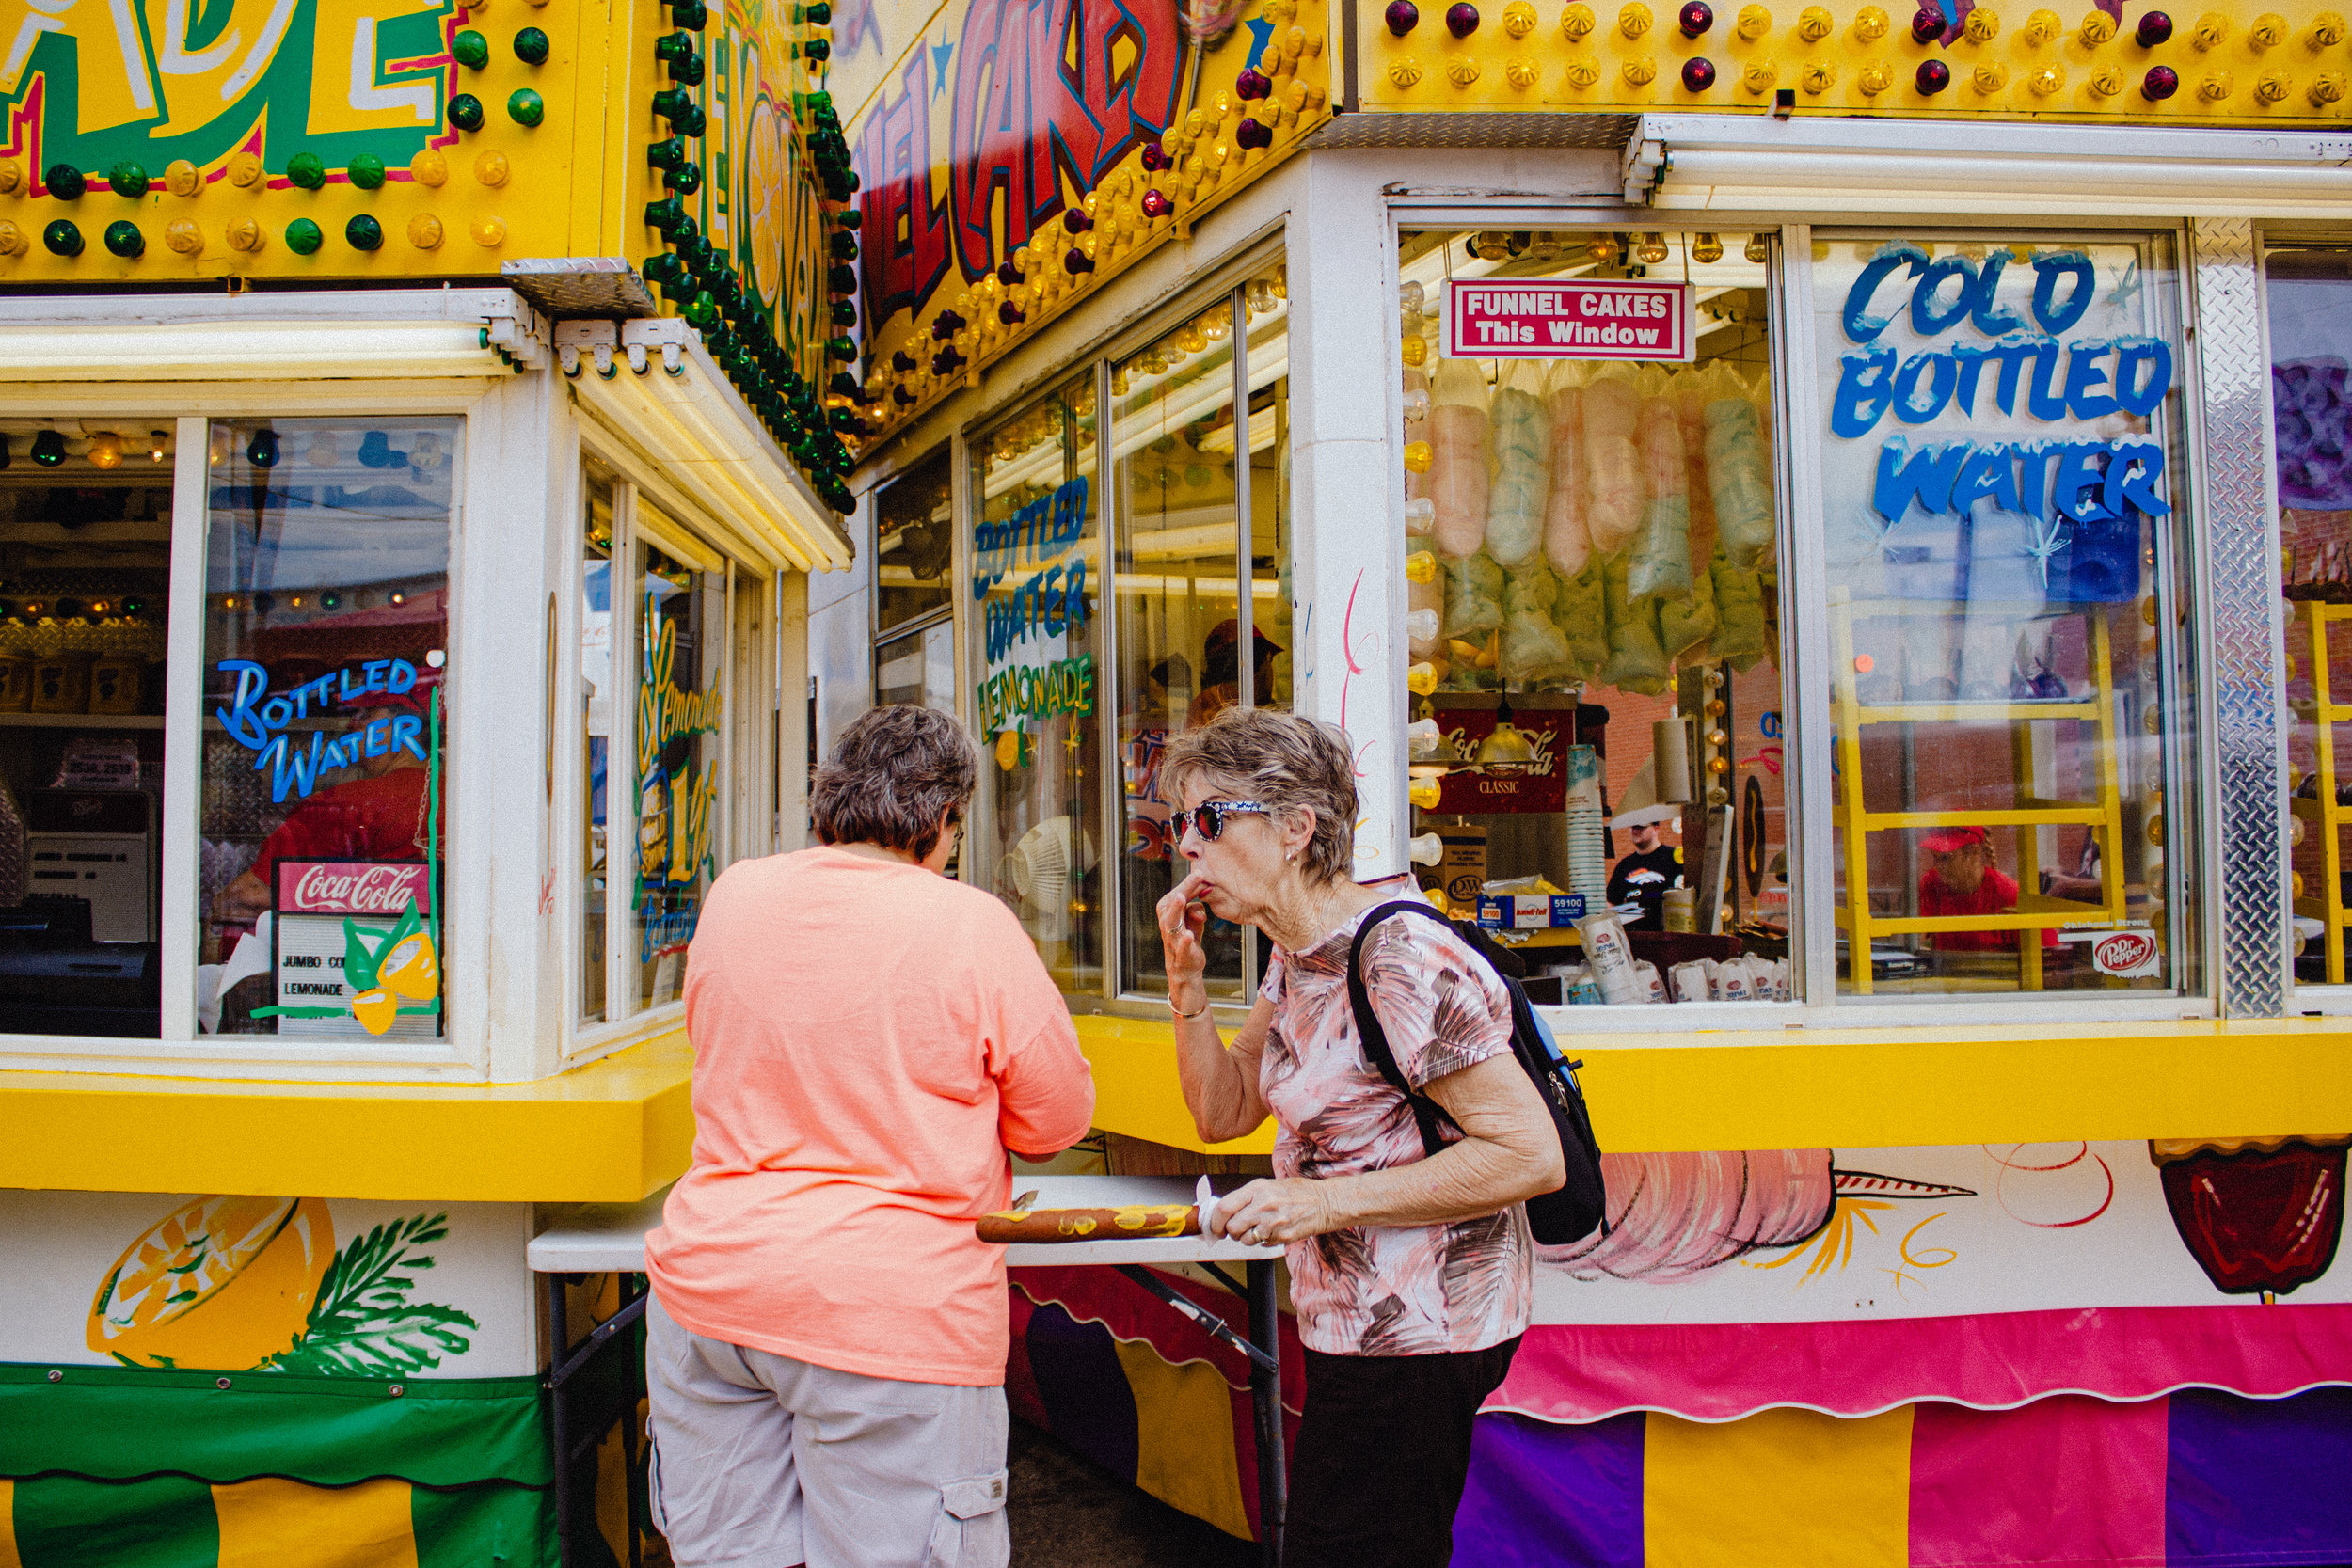 A pair of fairgoers add toppings to their corndogs on the opening day of the Oklahoma State Fair in Oklahoma City on September 14, 2016.